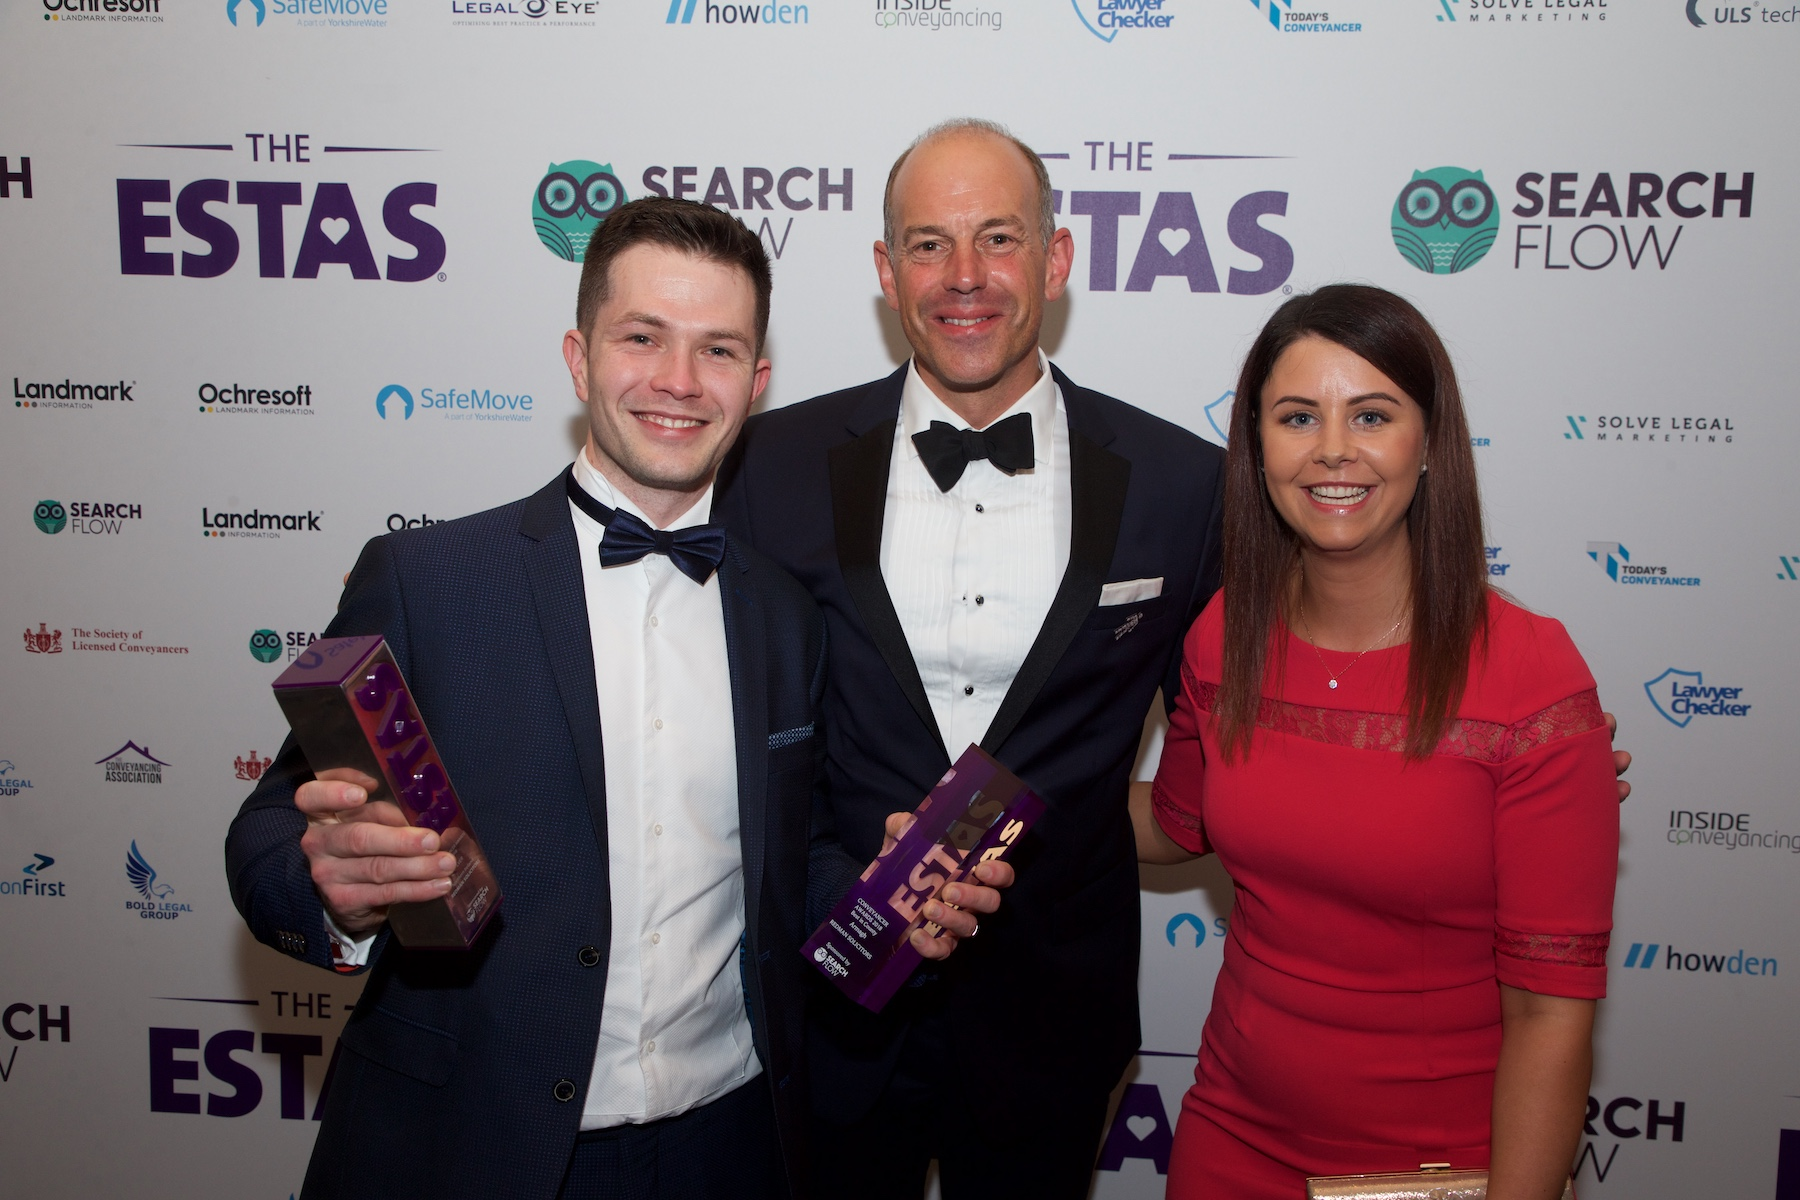 awards ceremony winners with phil spencer Grosvenor House Hotel in London graphic design tunbridge wells crowborough beth cook design